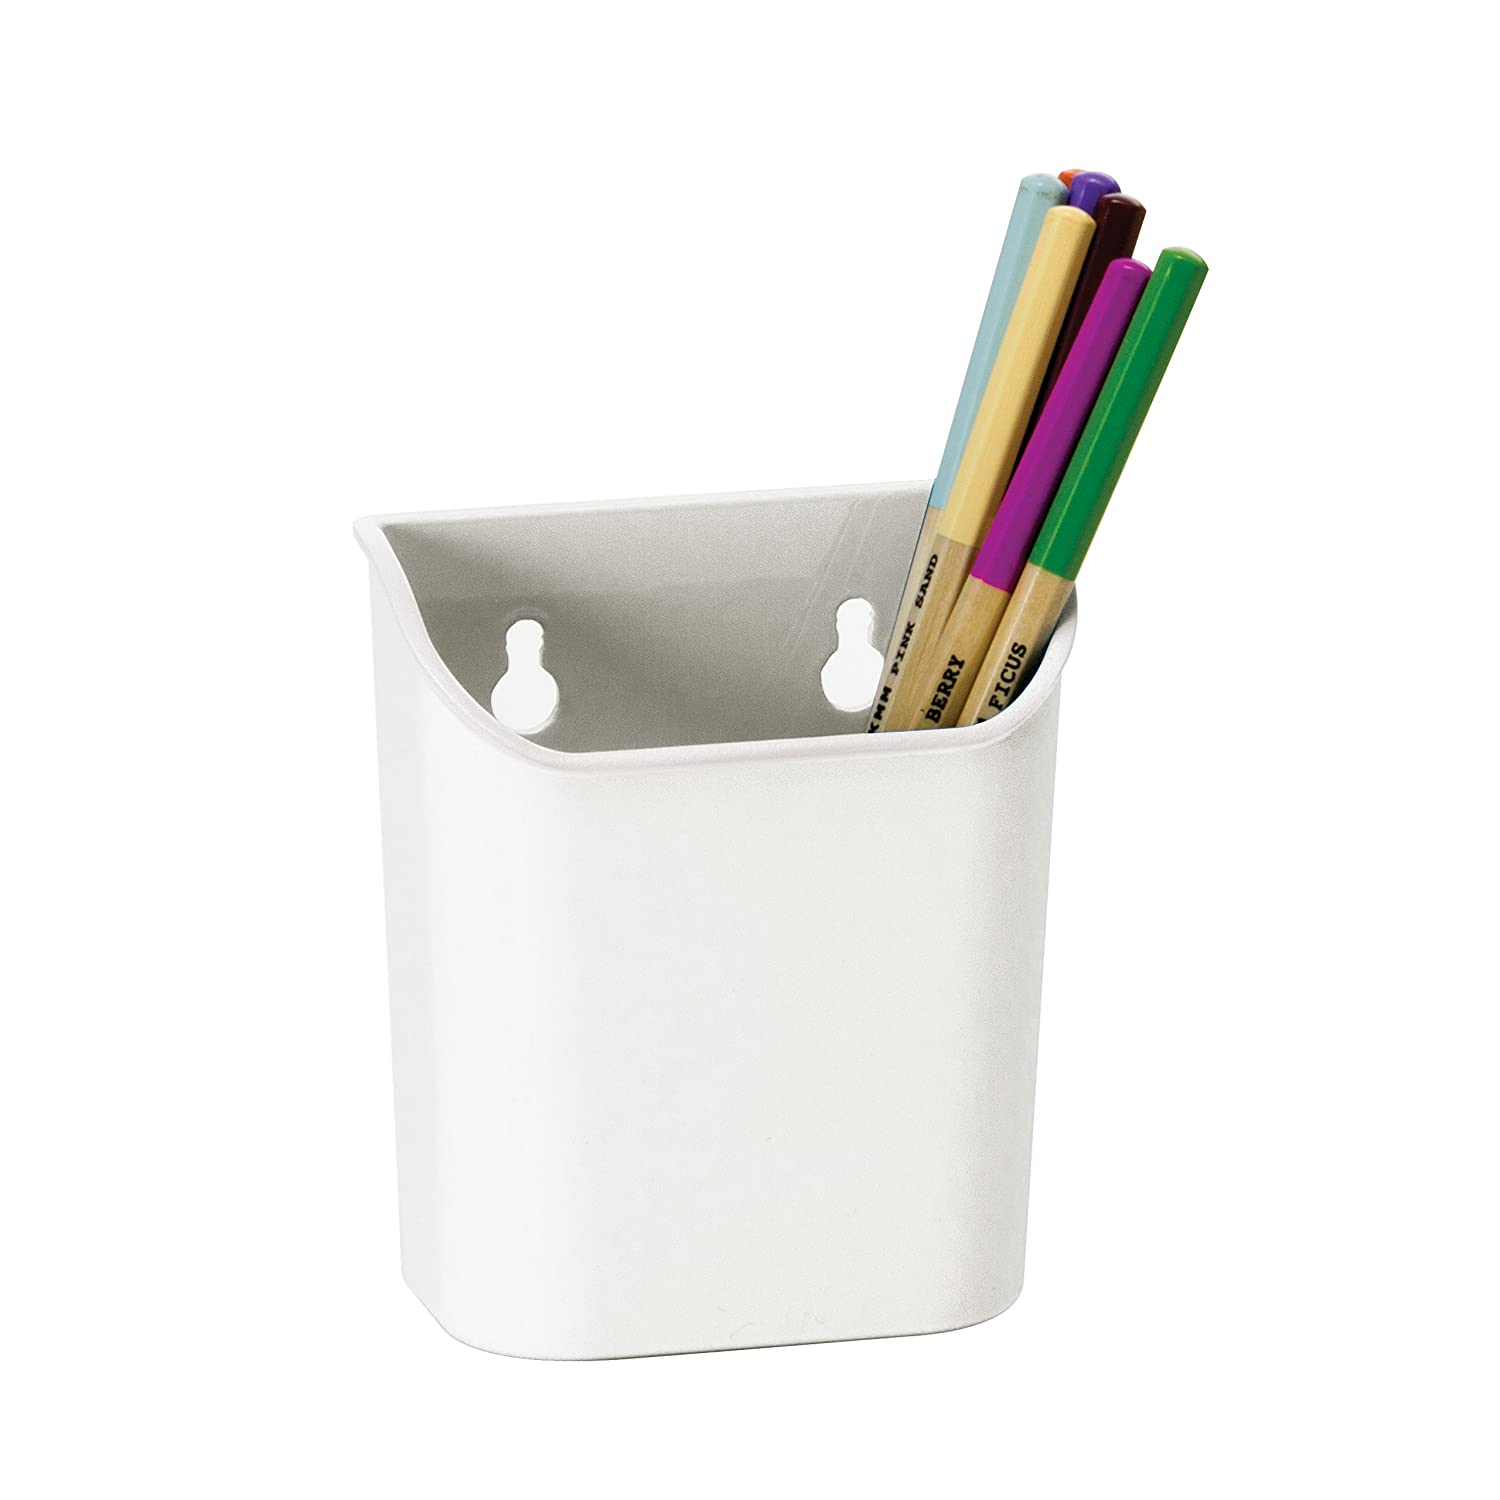 Officemate Magnet Plus Magnetic Pencil Cup, White (92540)